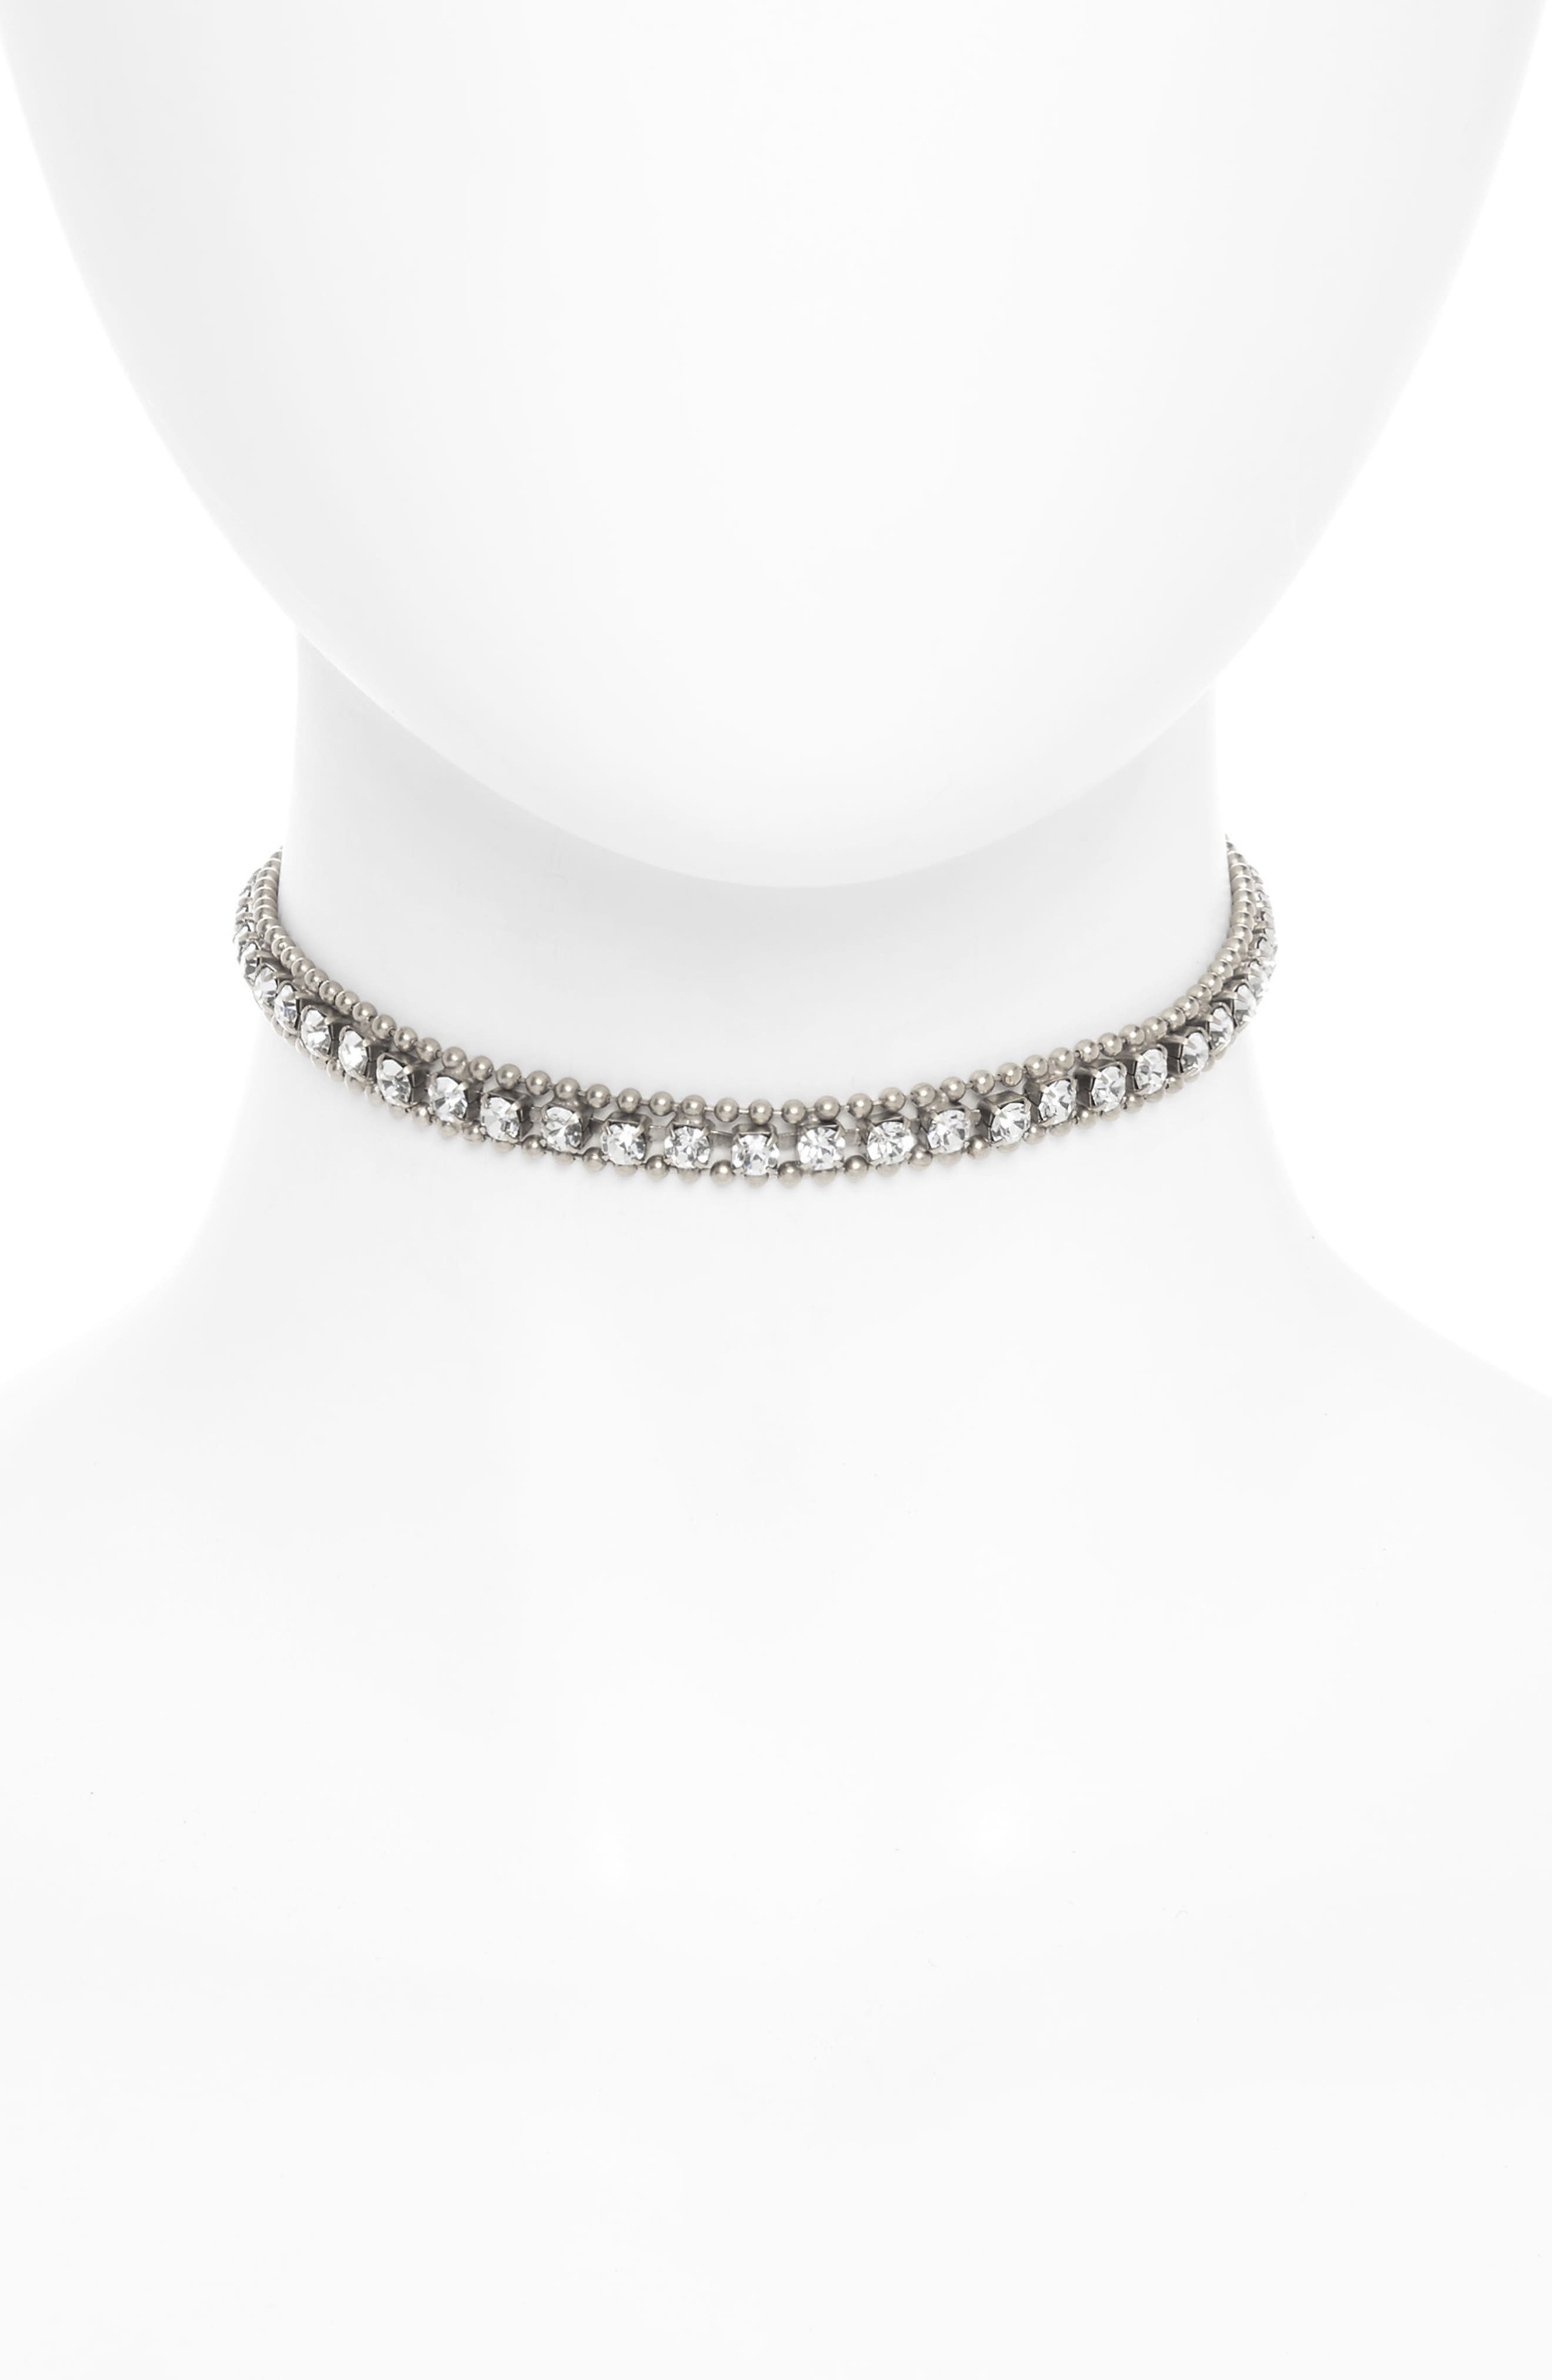 Main Image - Loren Hope Crystal Choker Necklace